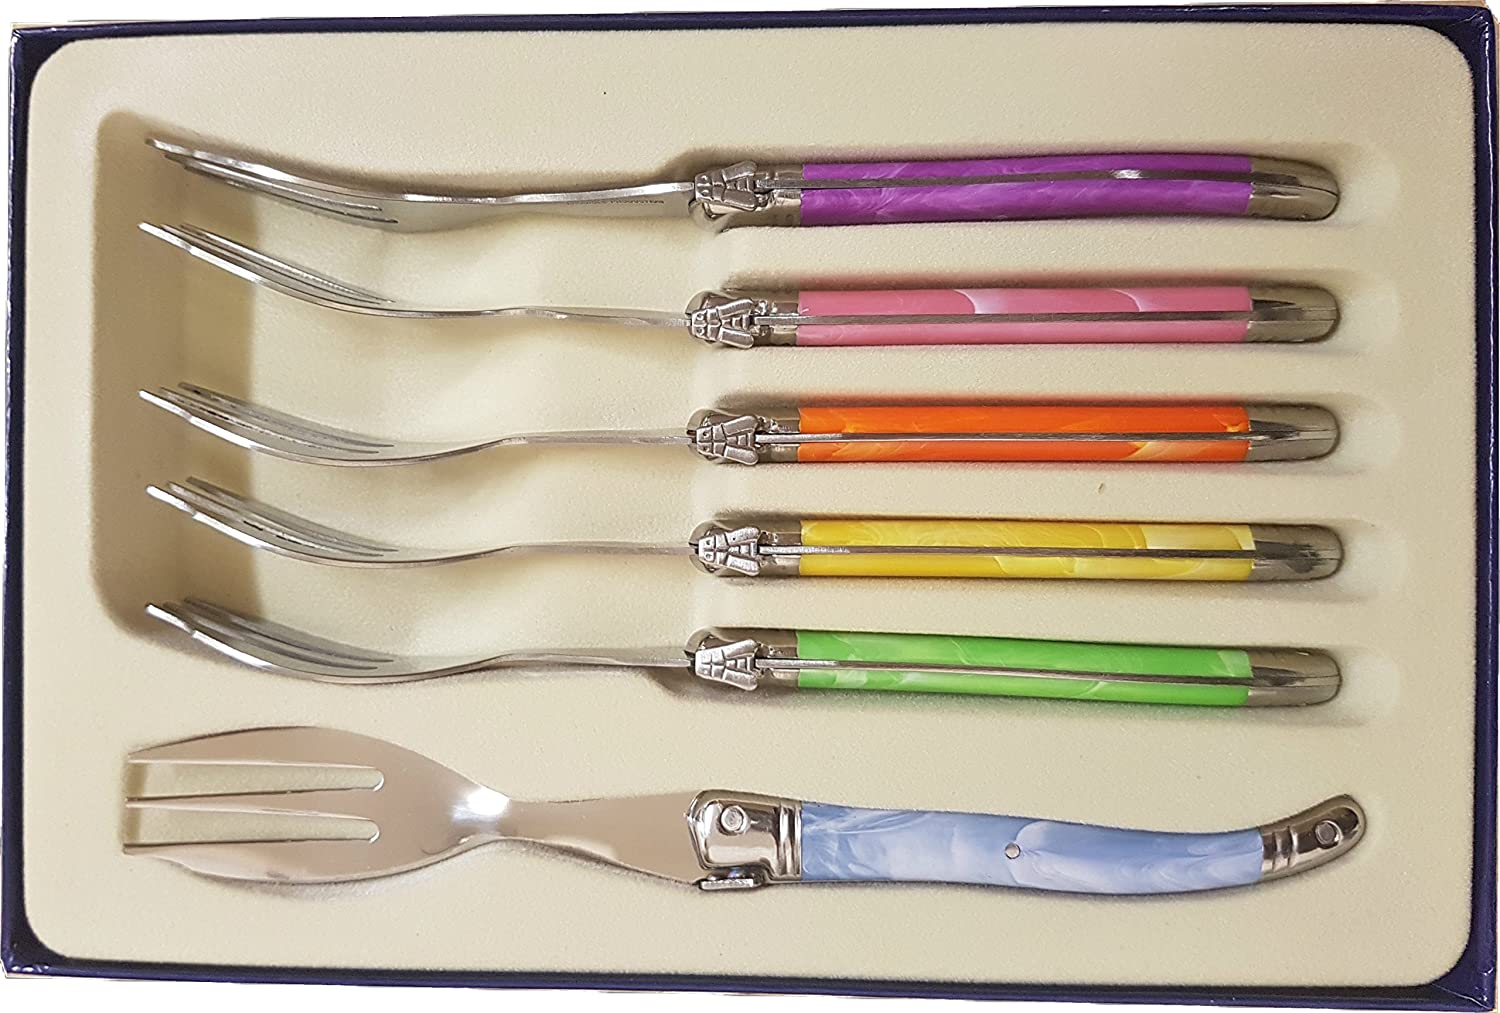 Dessert Fork Set of 6 by Laguiole